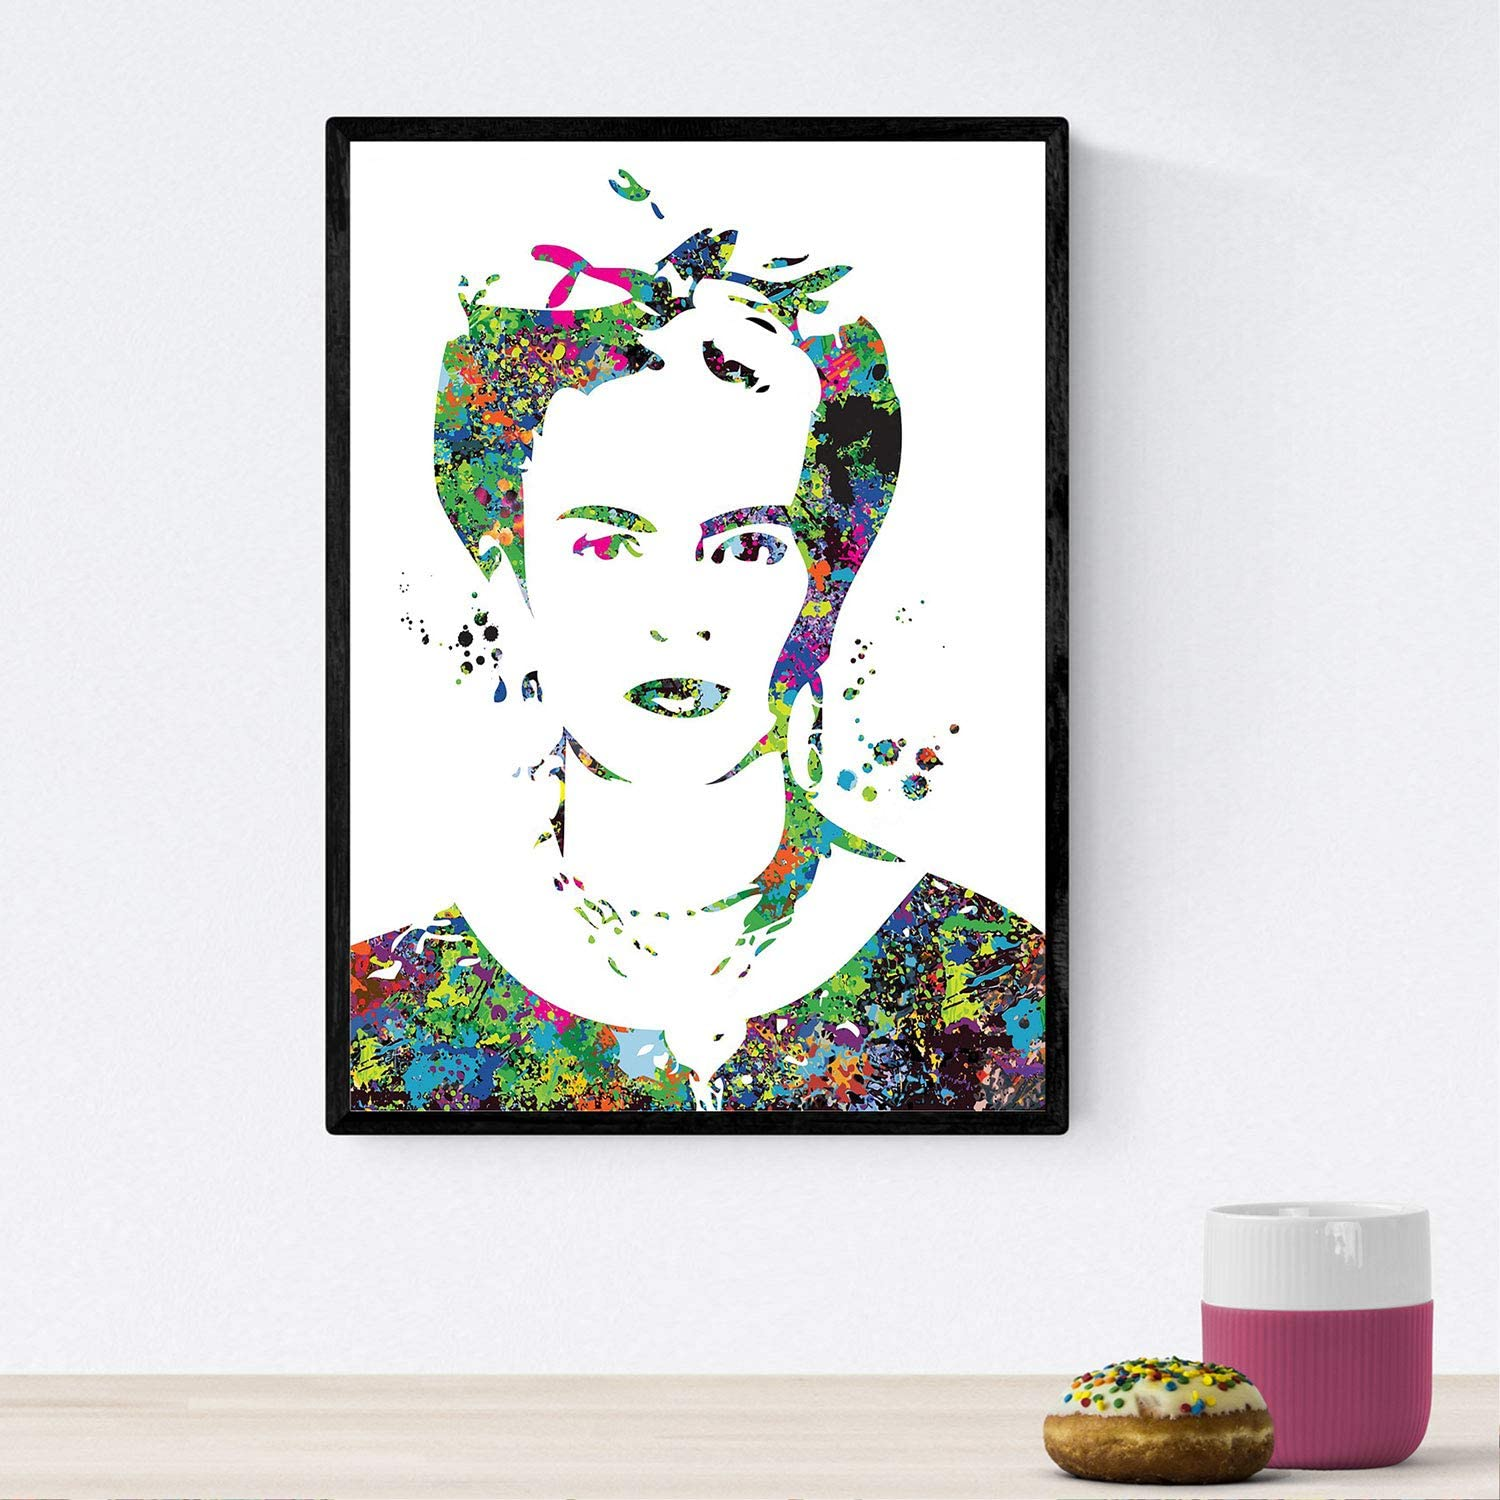 Nacnic Poster Frida Kahlo watercolor style. Tropical wall art, Mexican decorations for home , Mexican wall decor , Aztec art , Chicano art, Mexican Painter Mix with watercolor style sheets for interior decoration. 8'x11' size